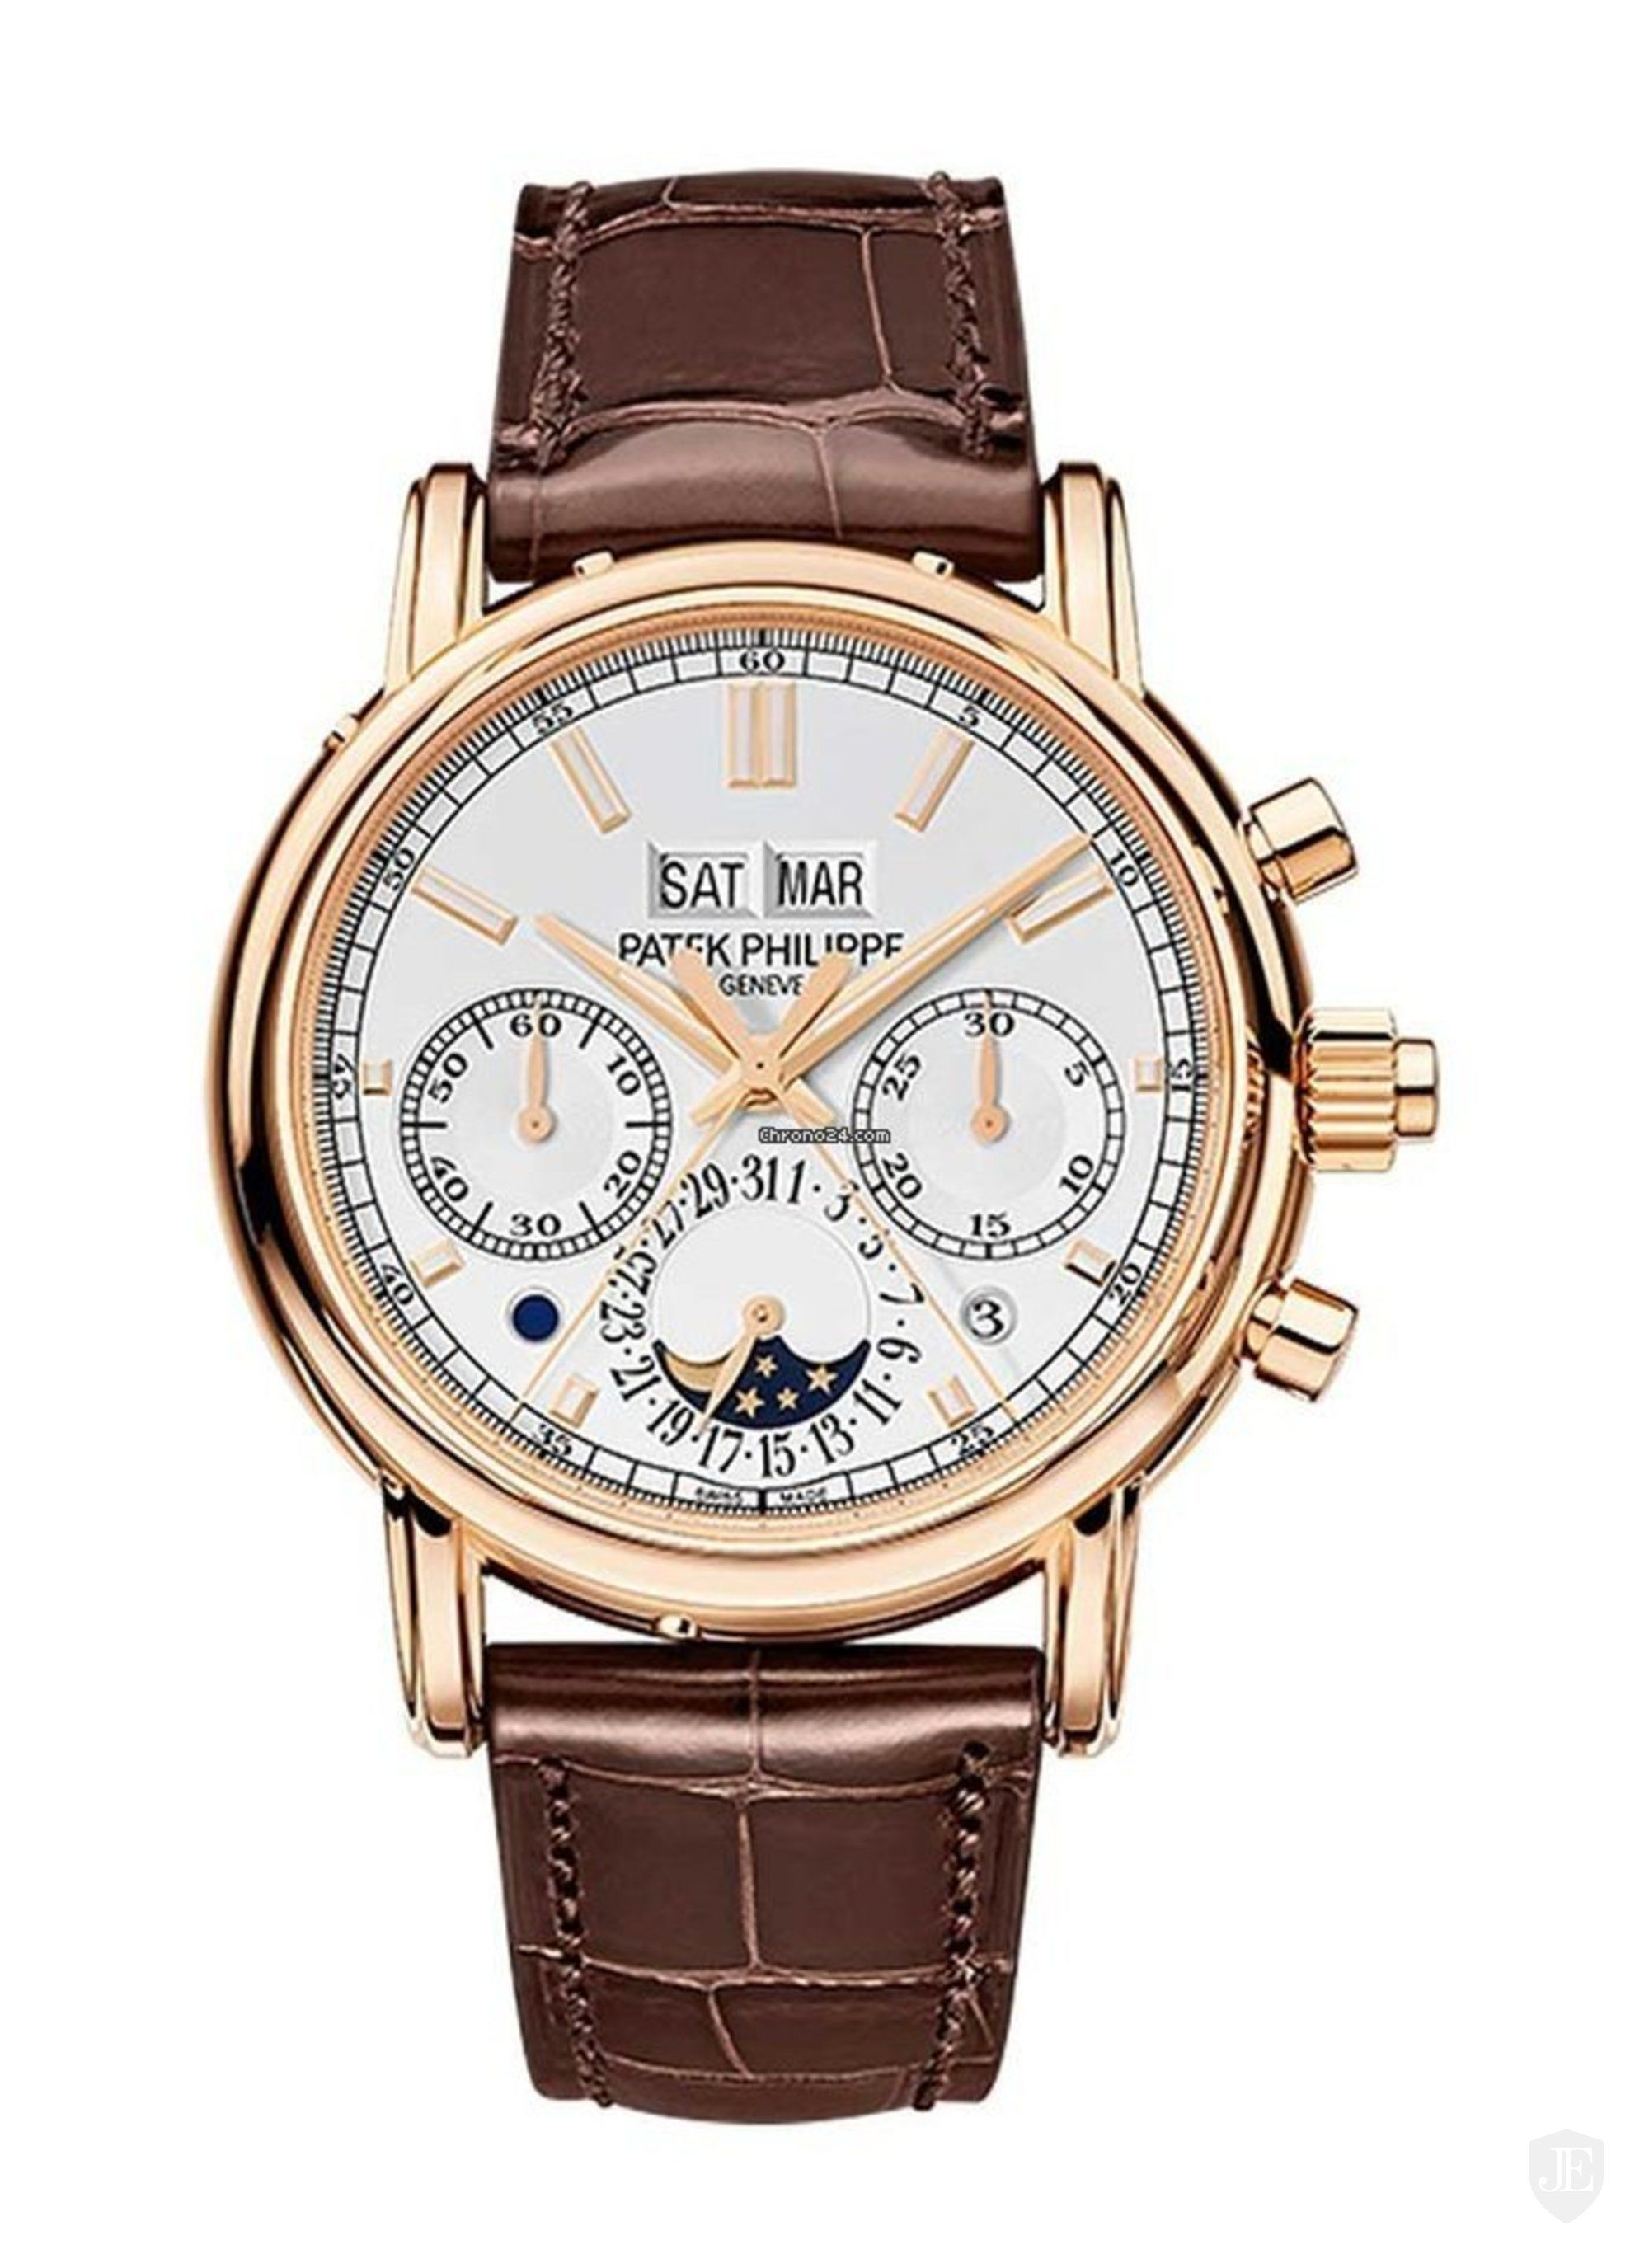 Patek Philippe Grand Complication Perpetual Calendar Split Second Chronograph 5204R-001